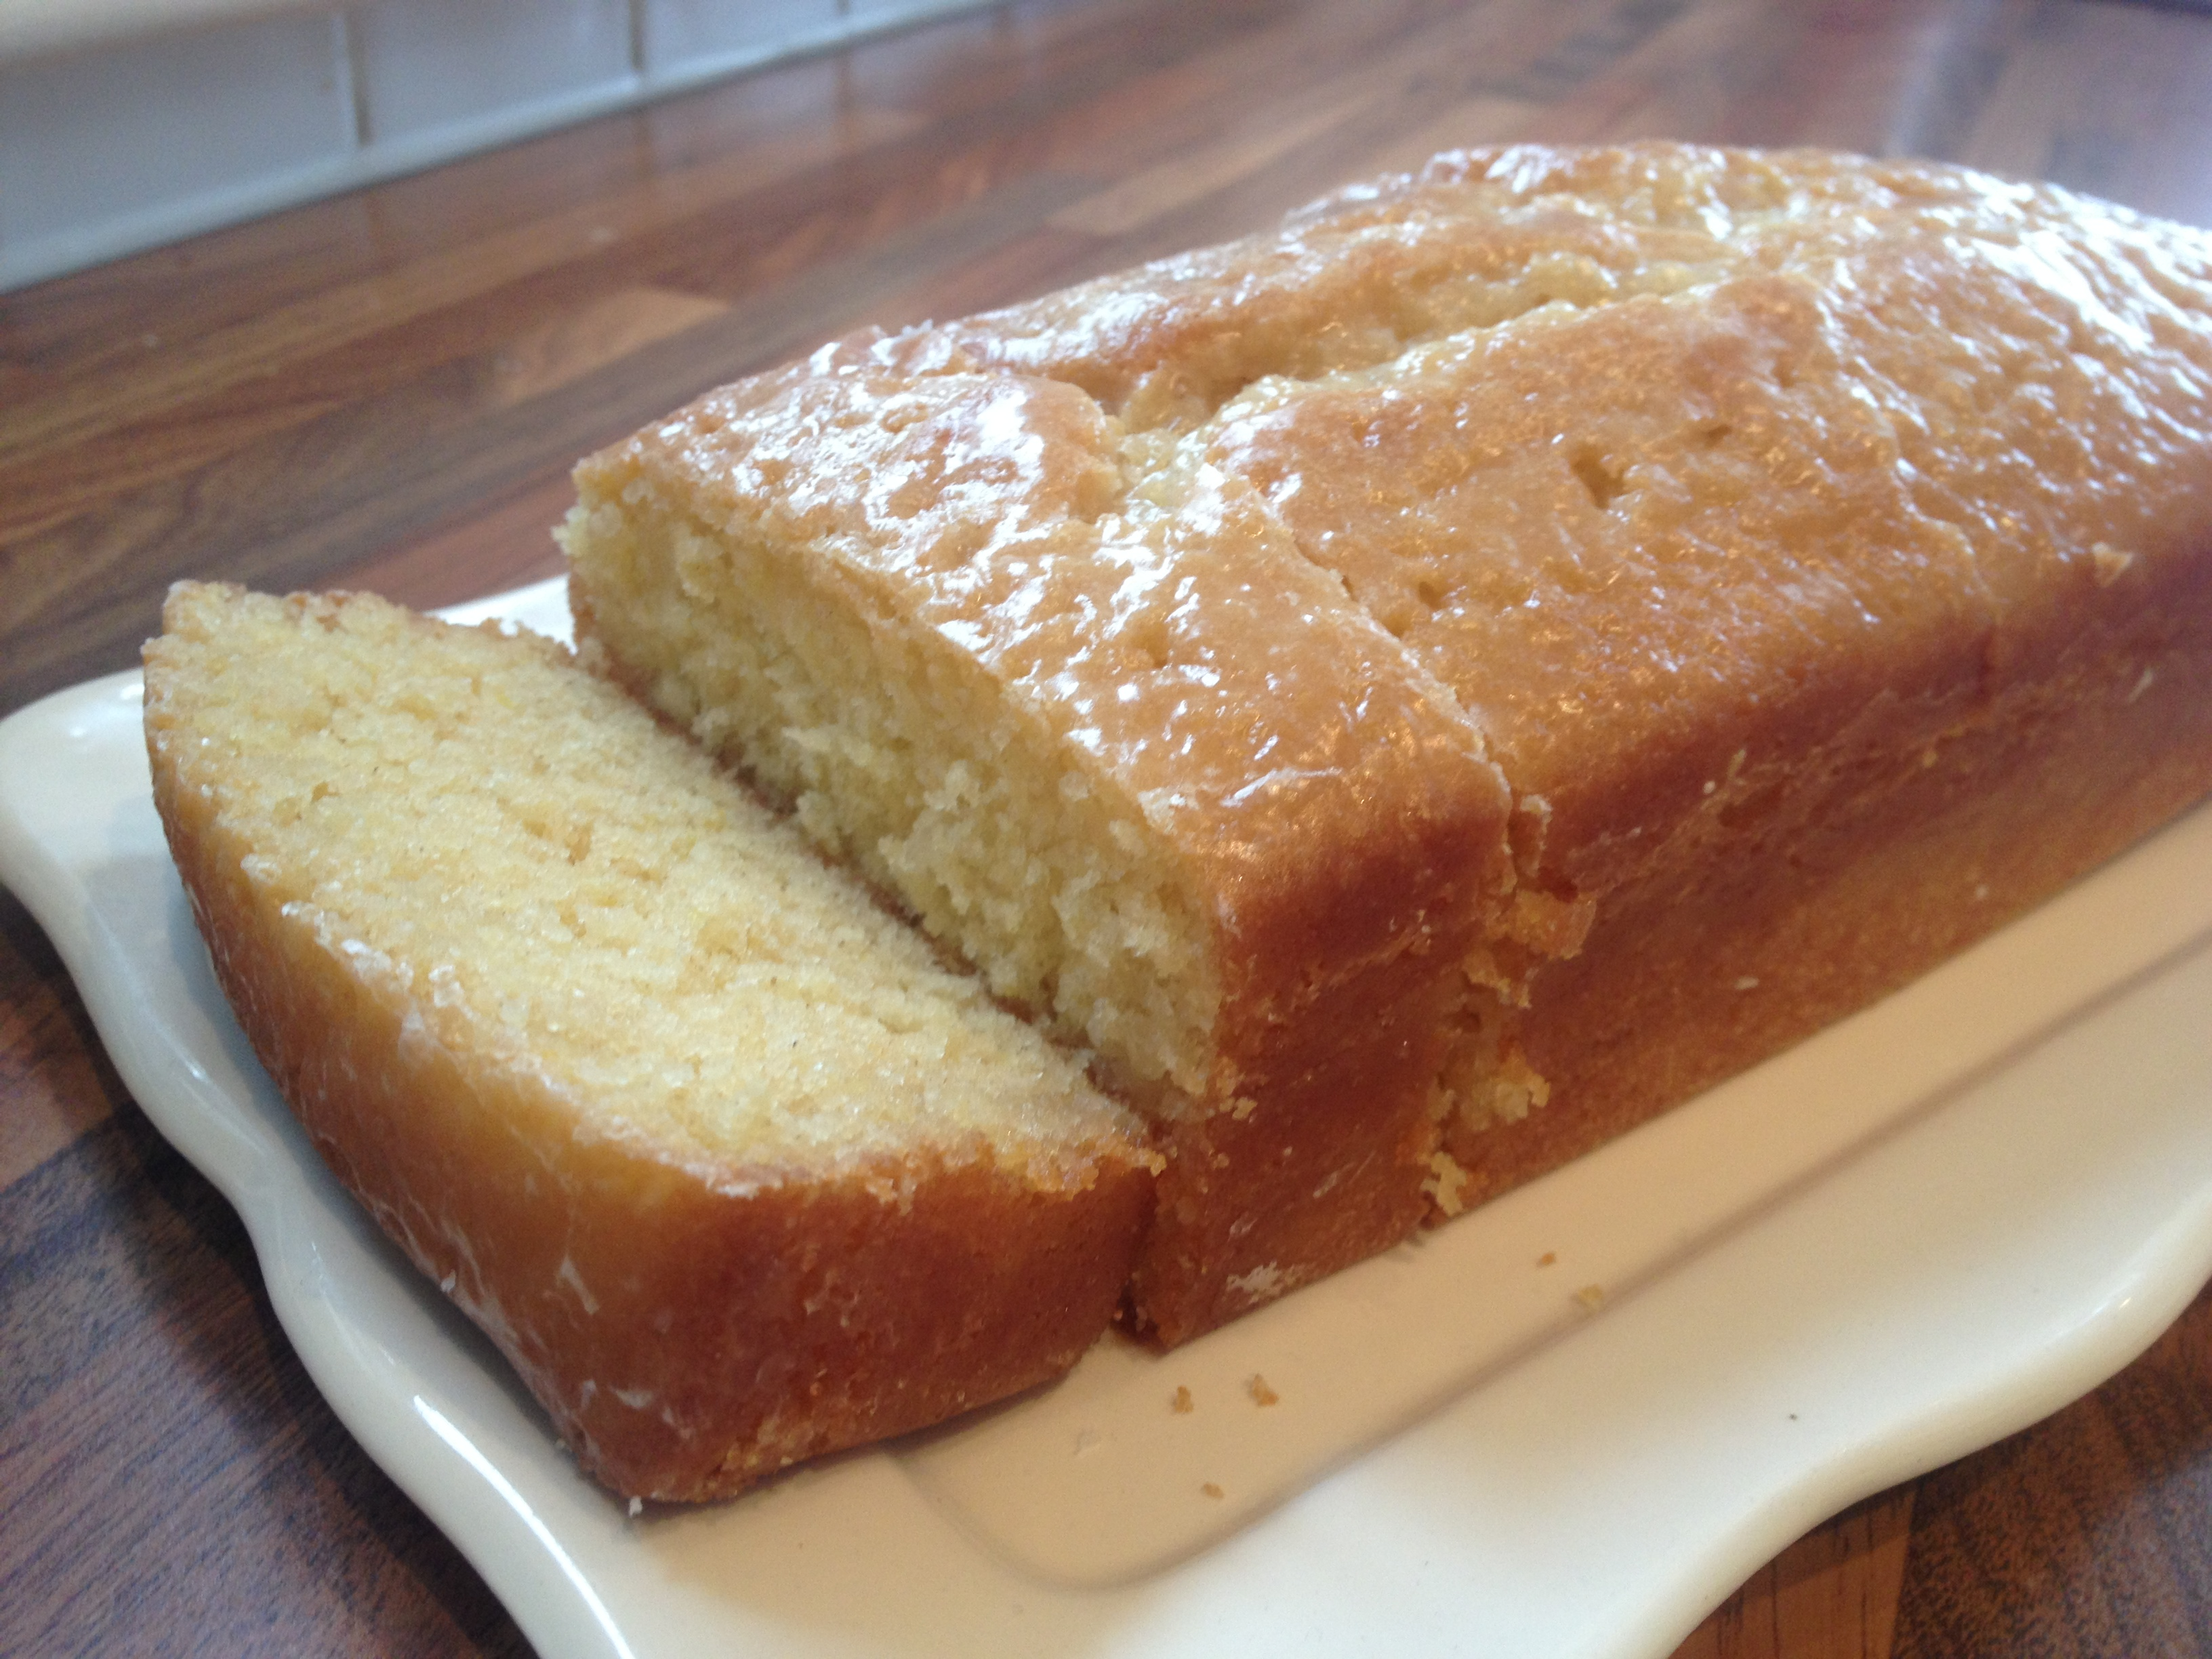 Very Moist Lemon Drizzle Cake